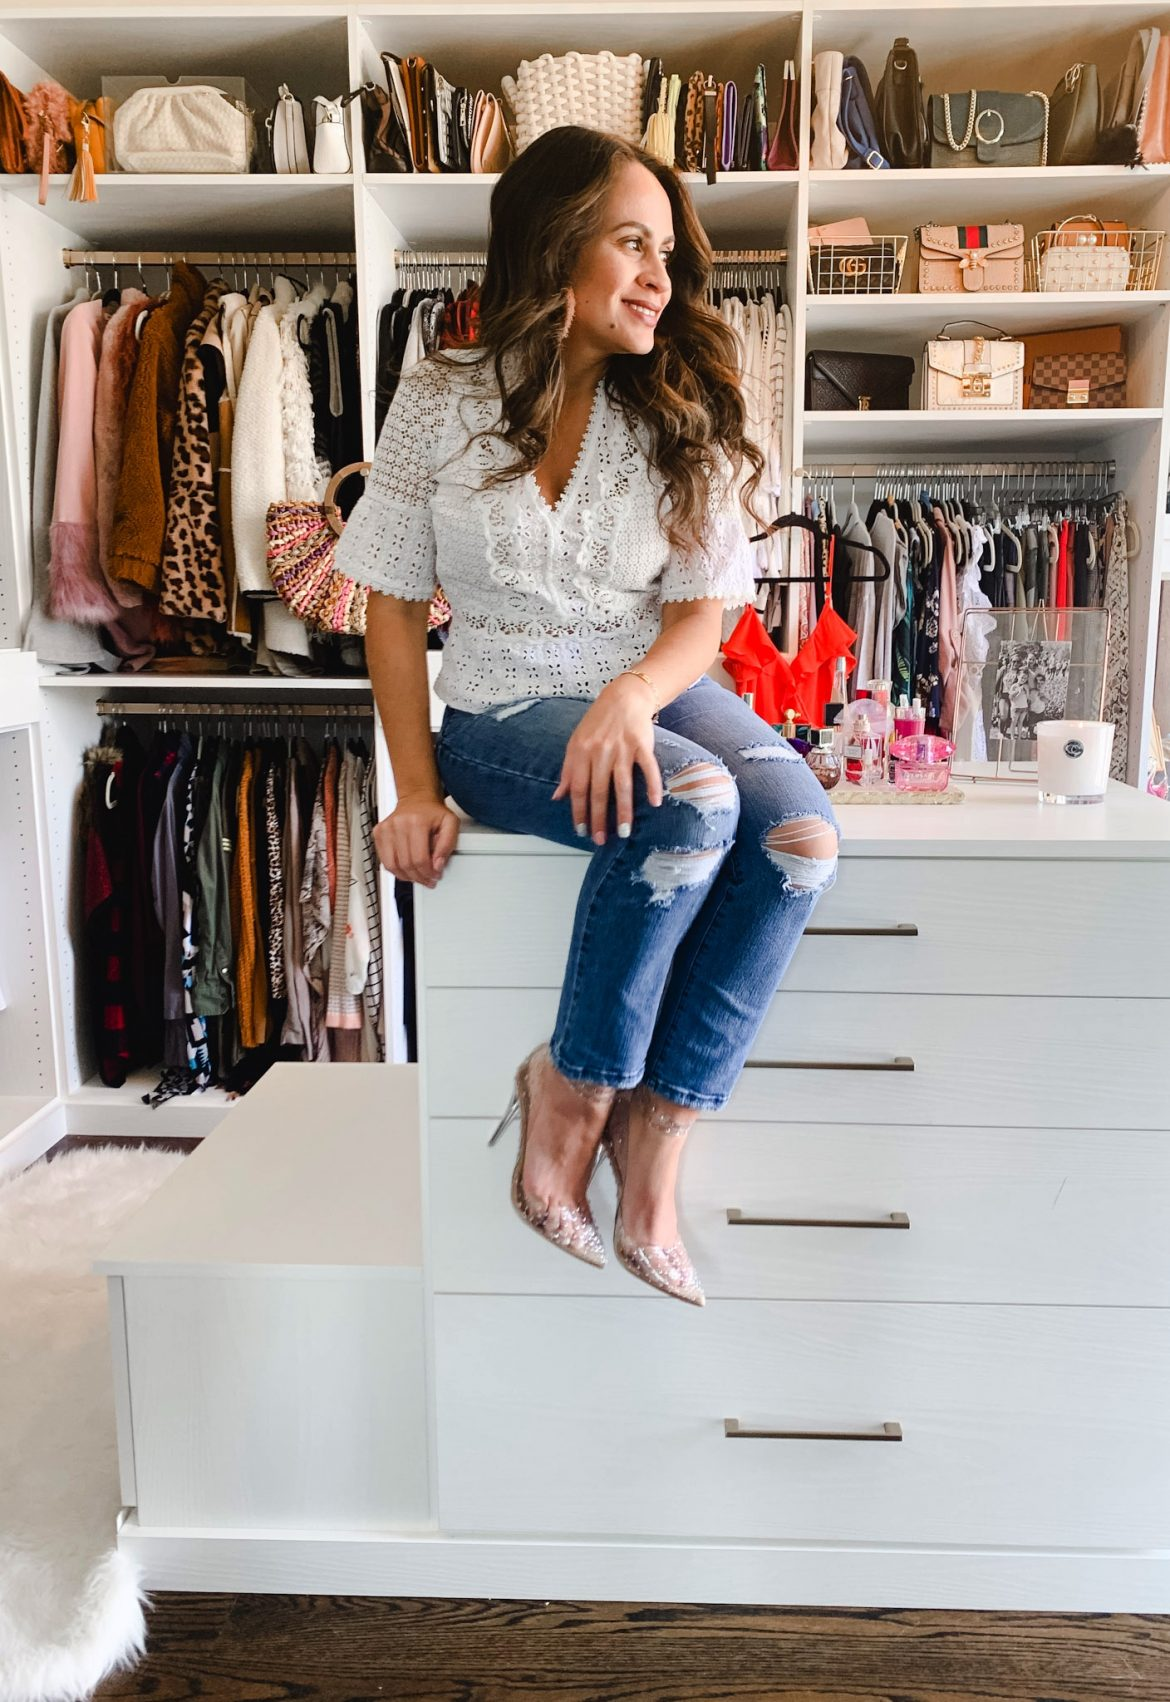 Melissa Mom with Style Mini Closet Tour